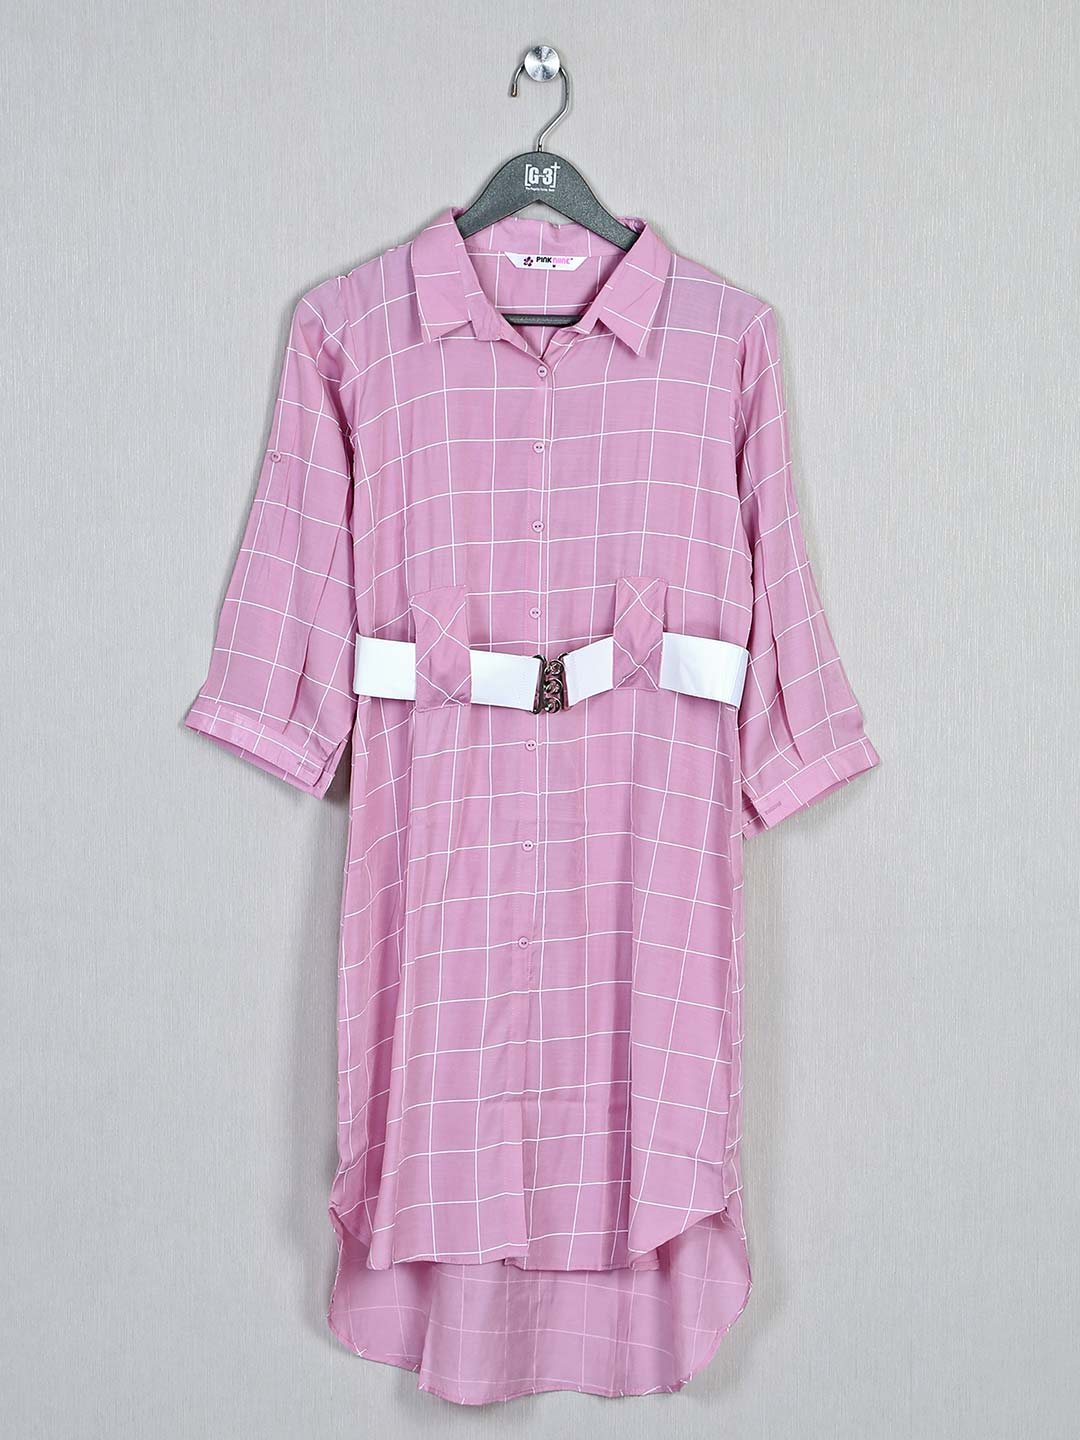 Cotton checks top in pink?imgeng=w_400